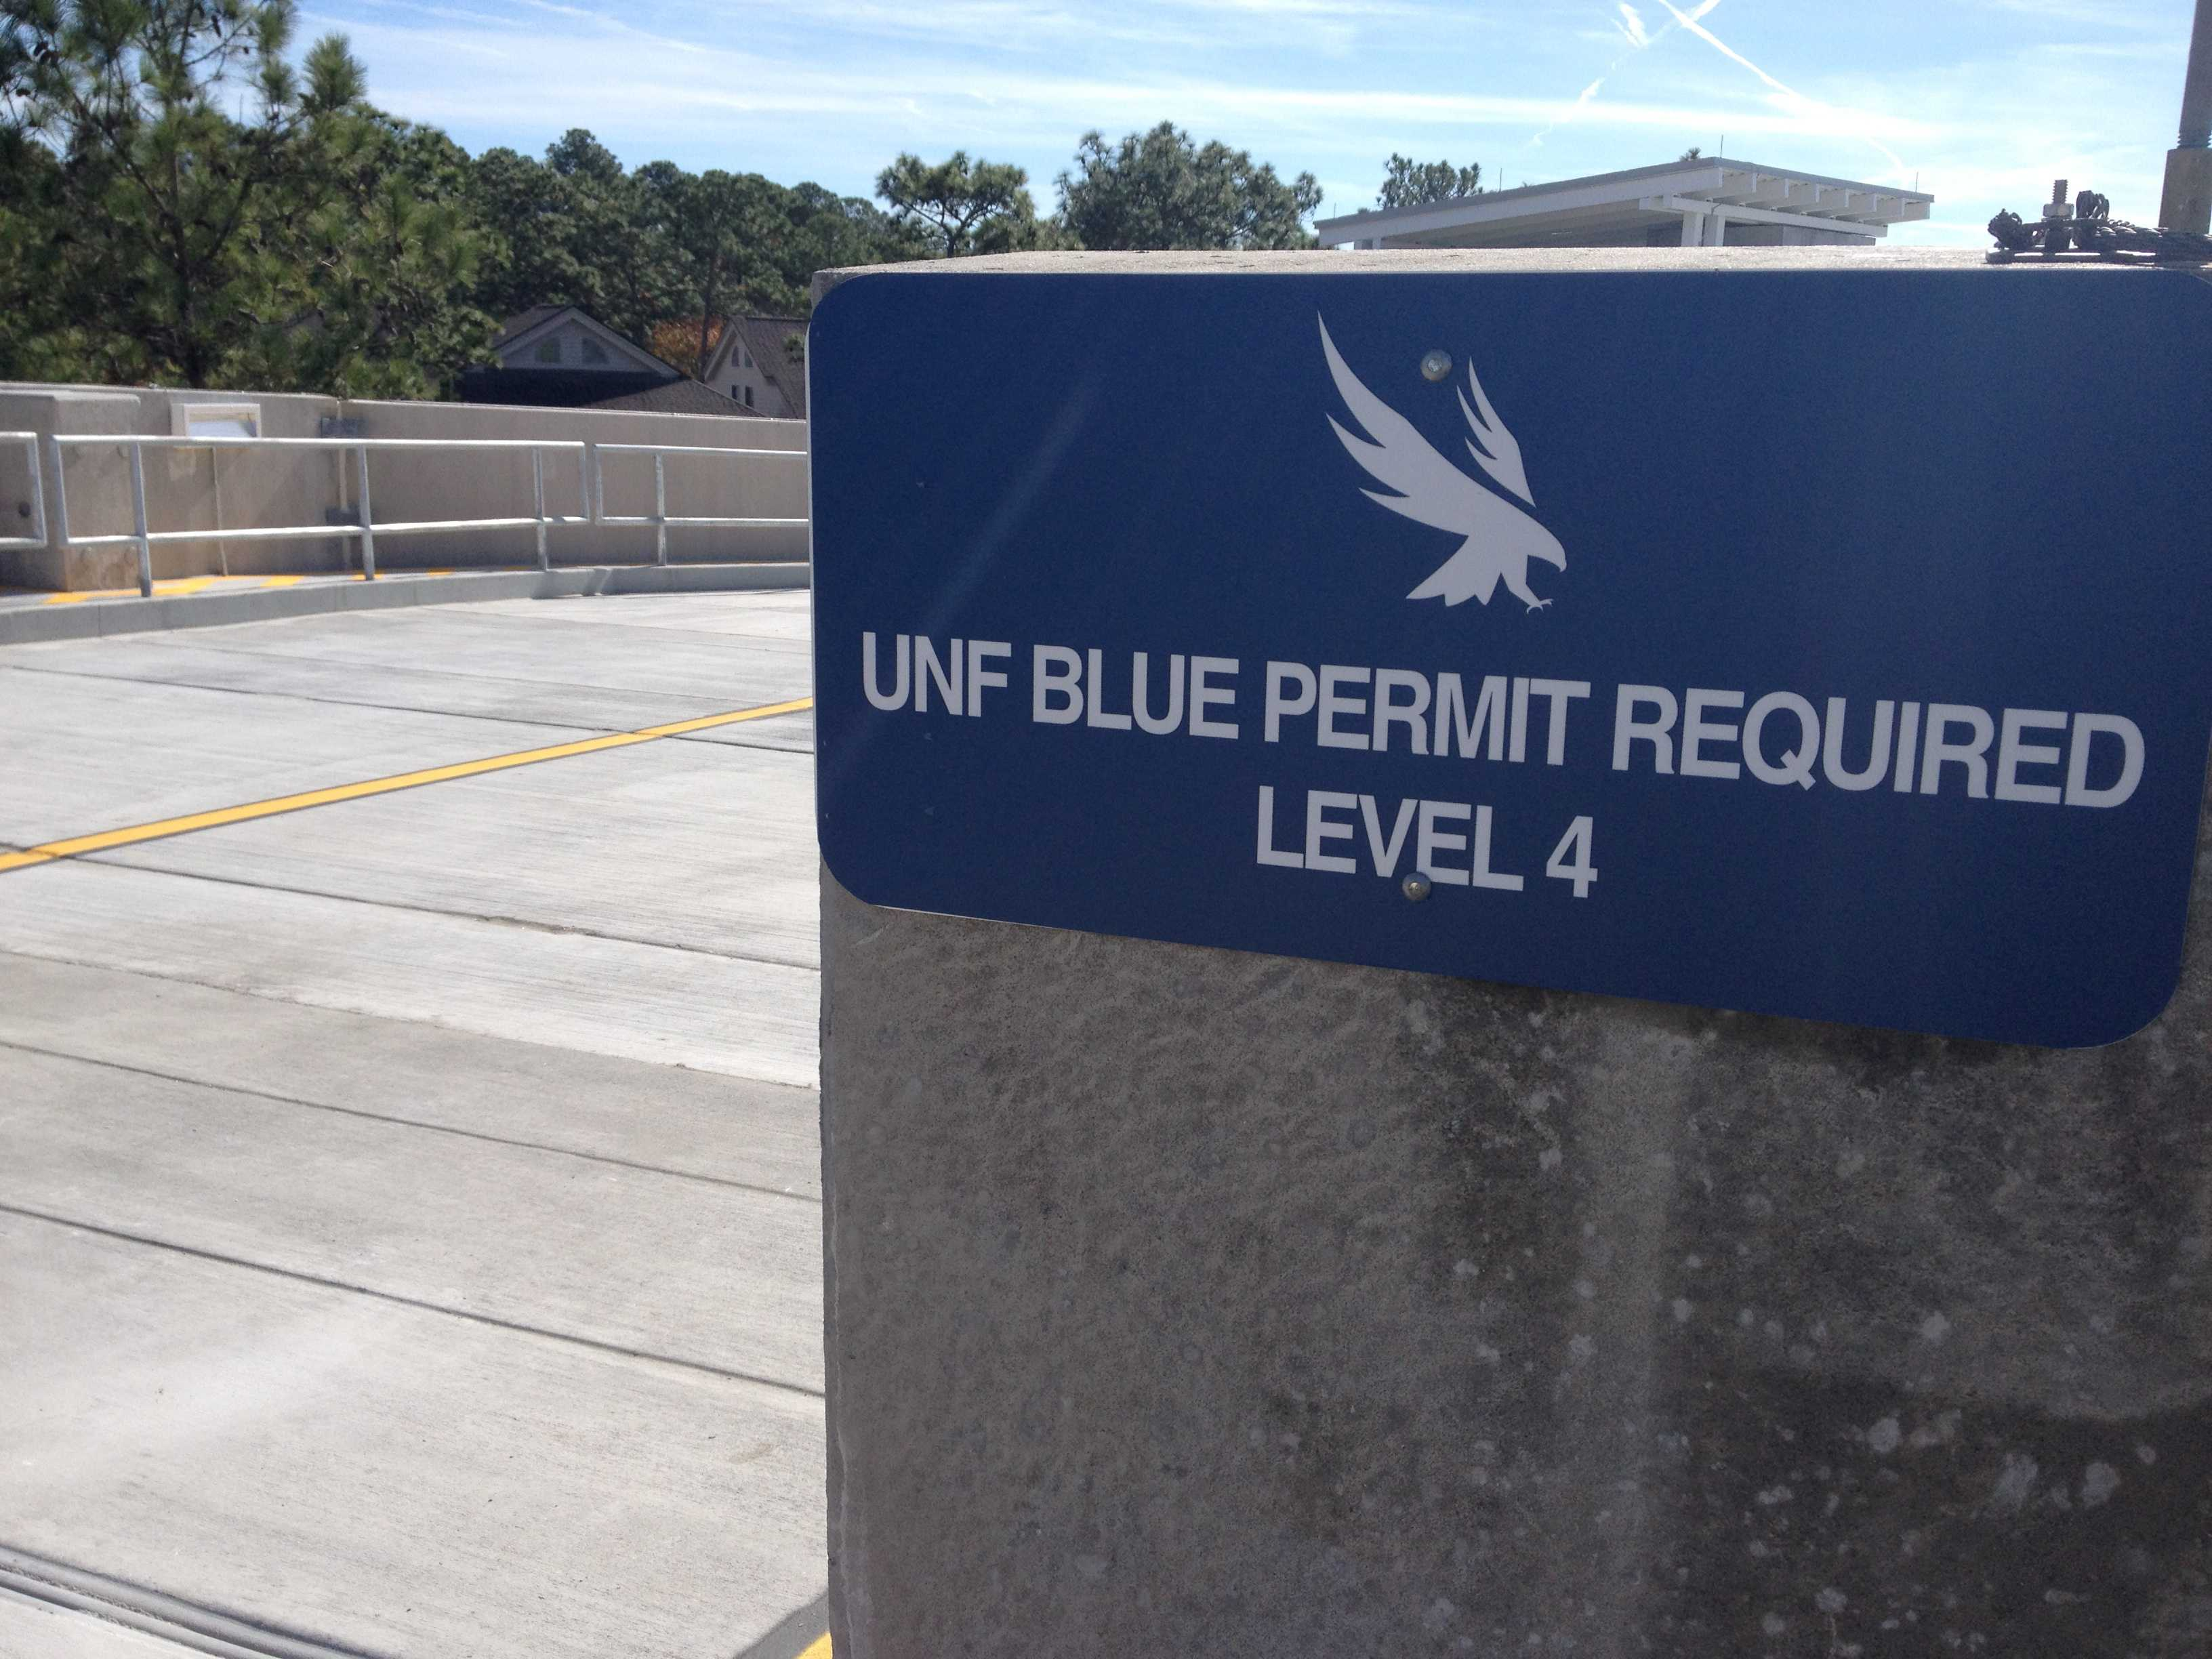 Parking changes: permit-based entrances and fewer Blue spots in Arena garage